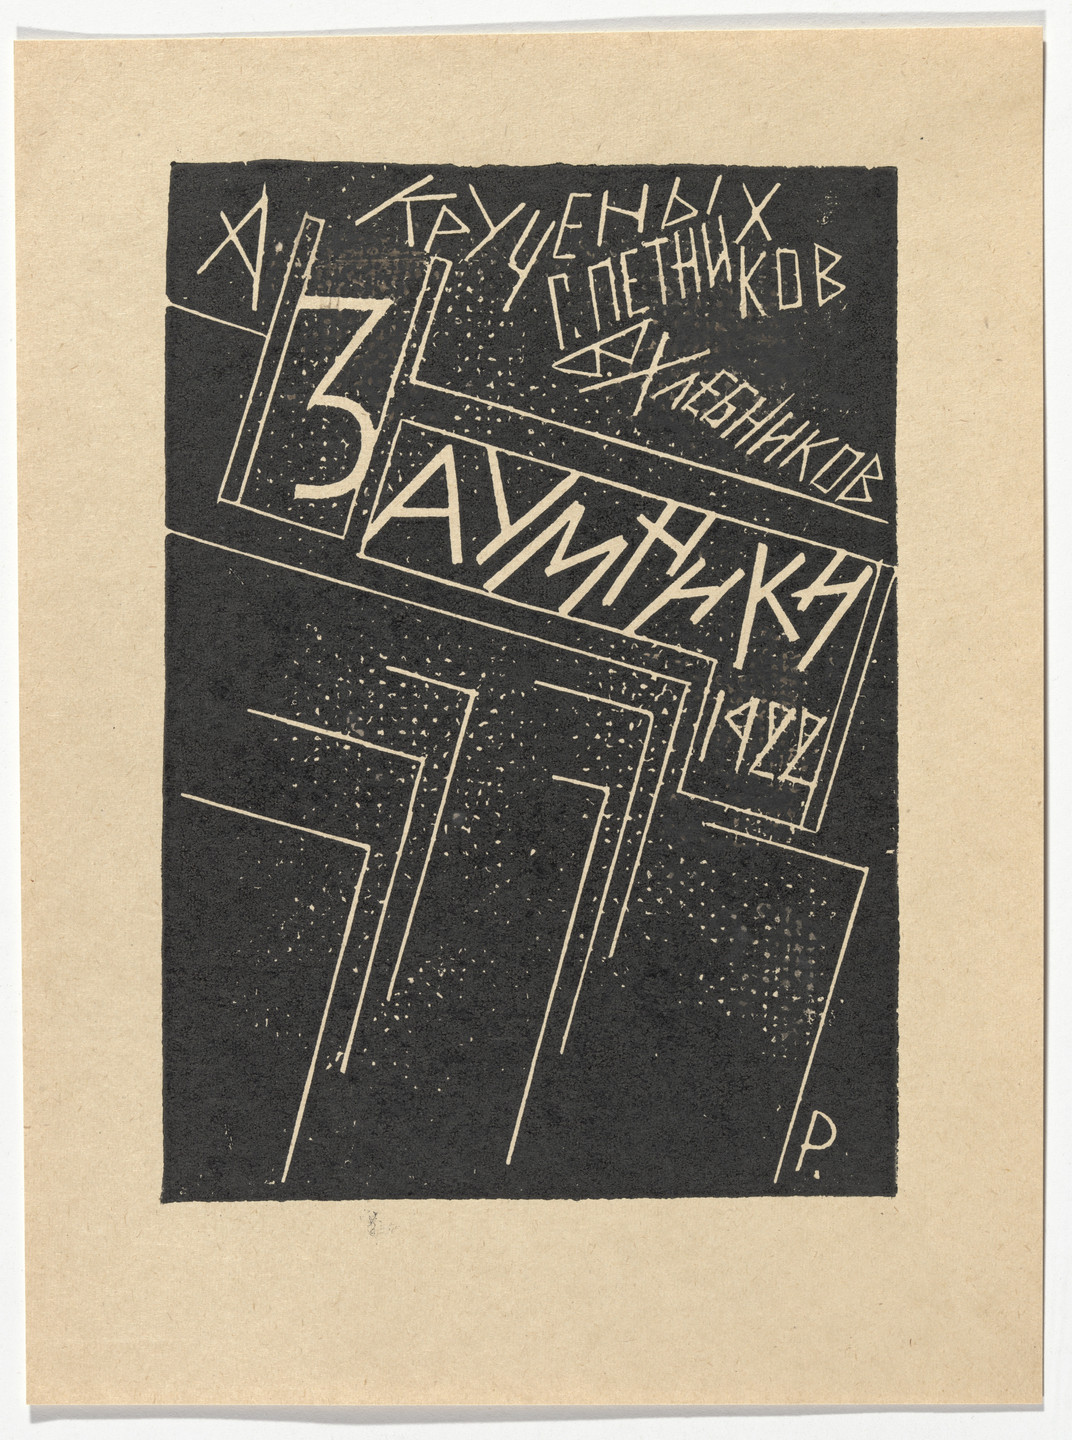 Aleksandr Rodchenko. Cover design for Zaumniki (Transrationalists). 1921